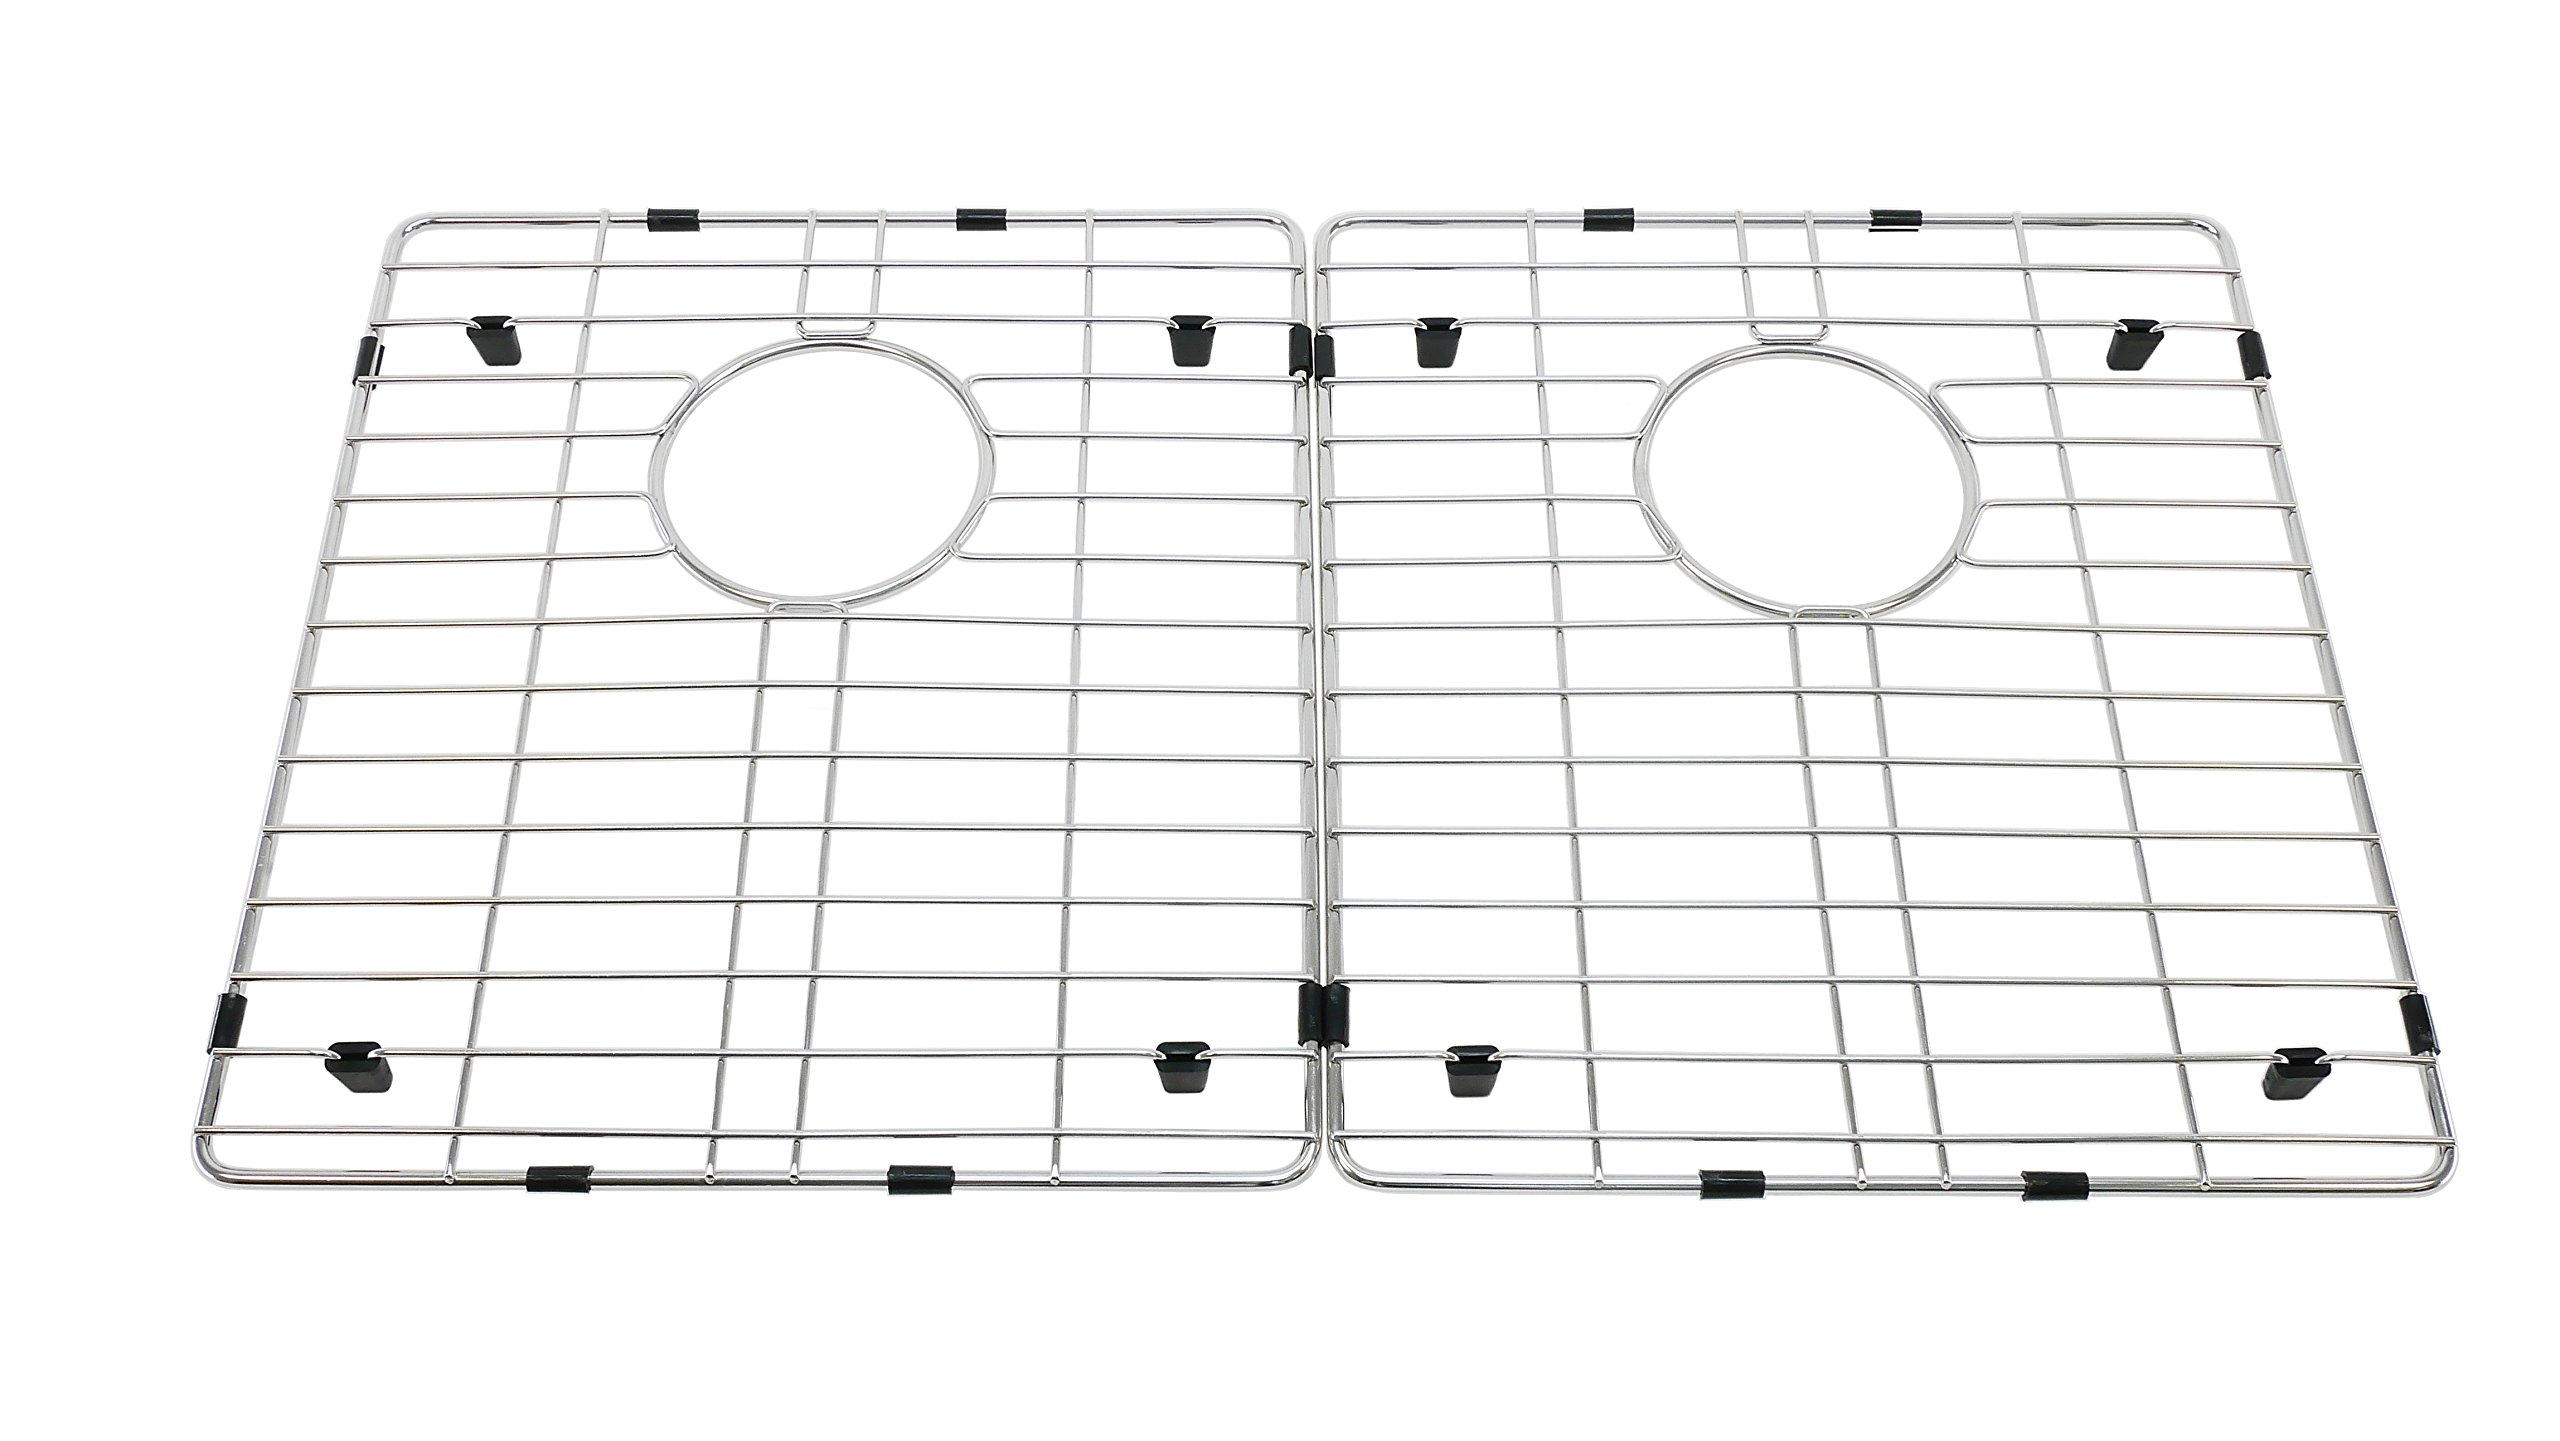 Auric Sink Grids for 36'' 5050 Double Bowl Sinks, BGFA-36-5050